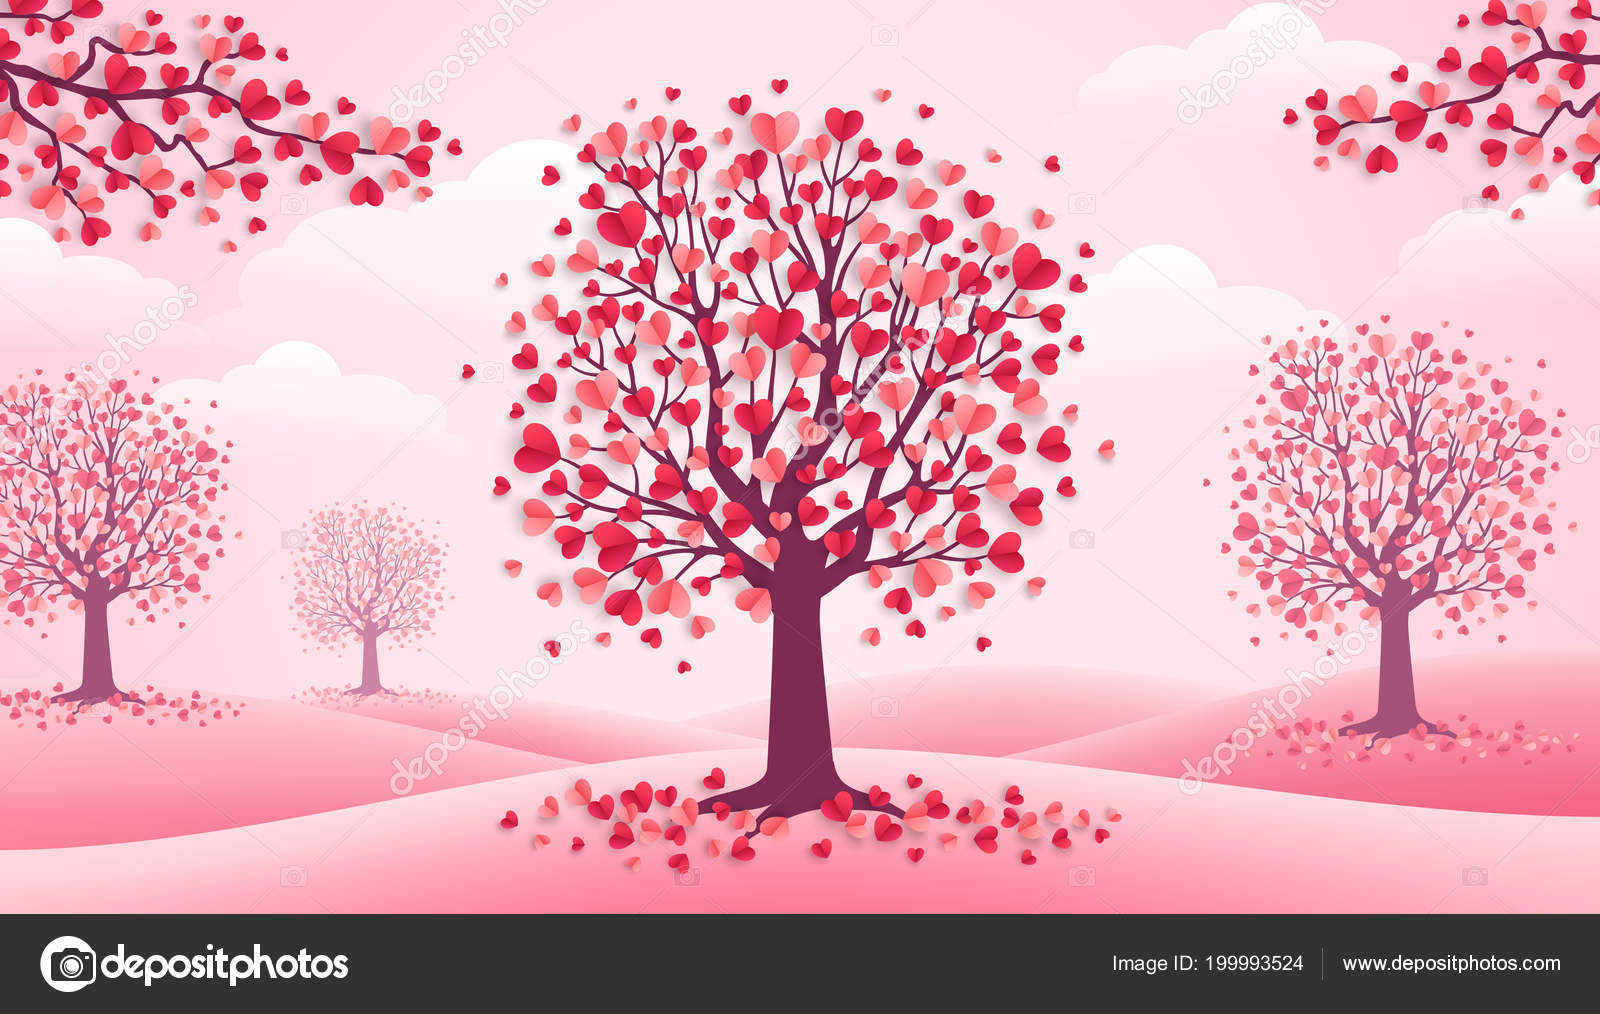 Happy Valentine Day Trees Heart Shape Leaves Pink Landscape Clouds